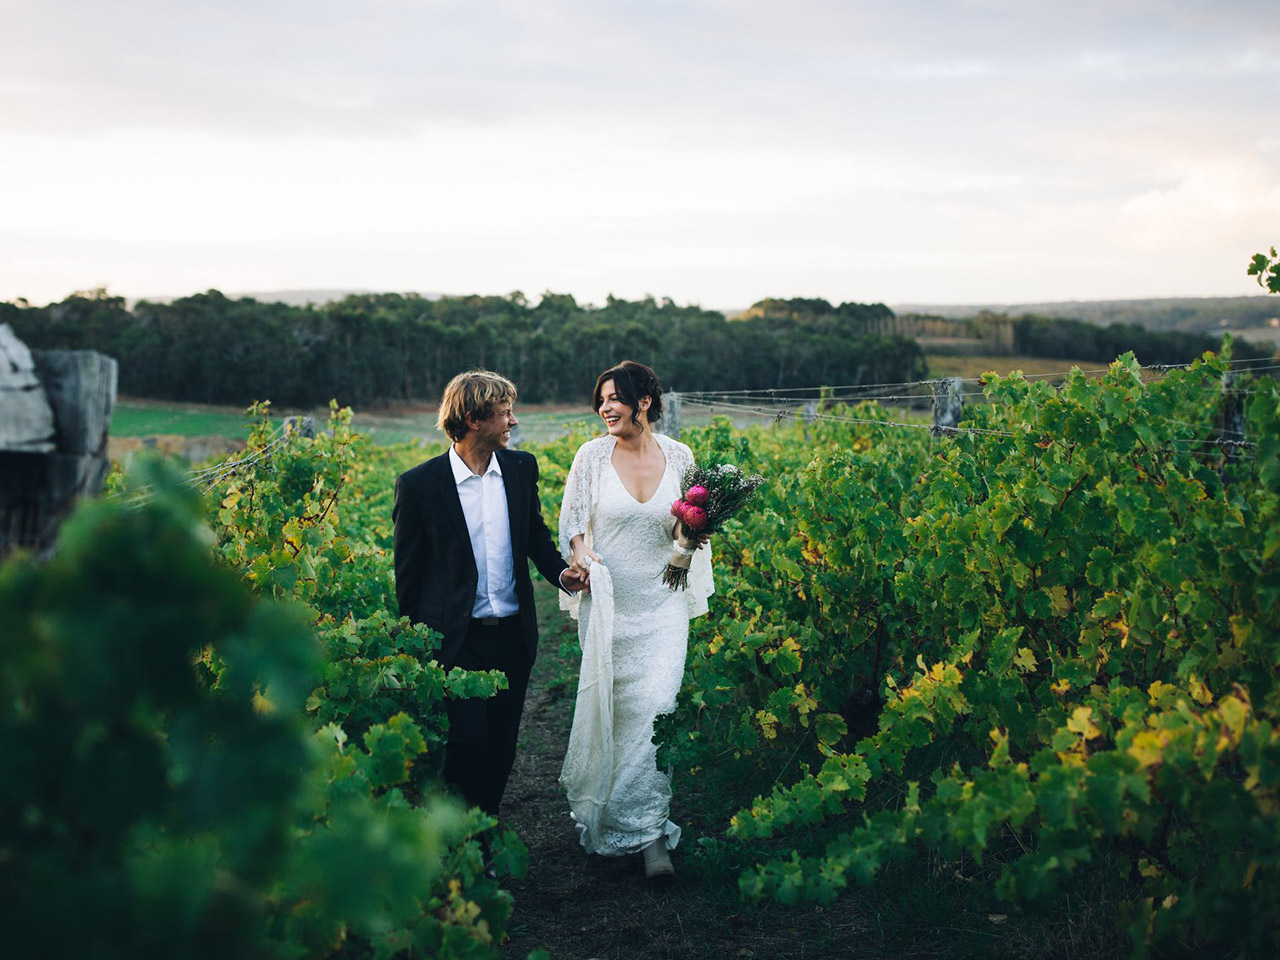 Bride And Groom Walking Down The Vineyard.